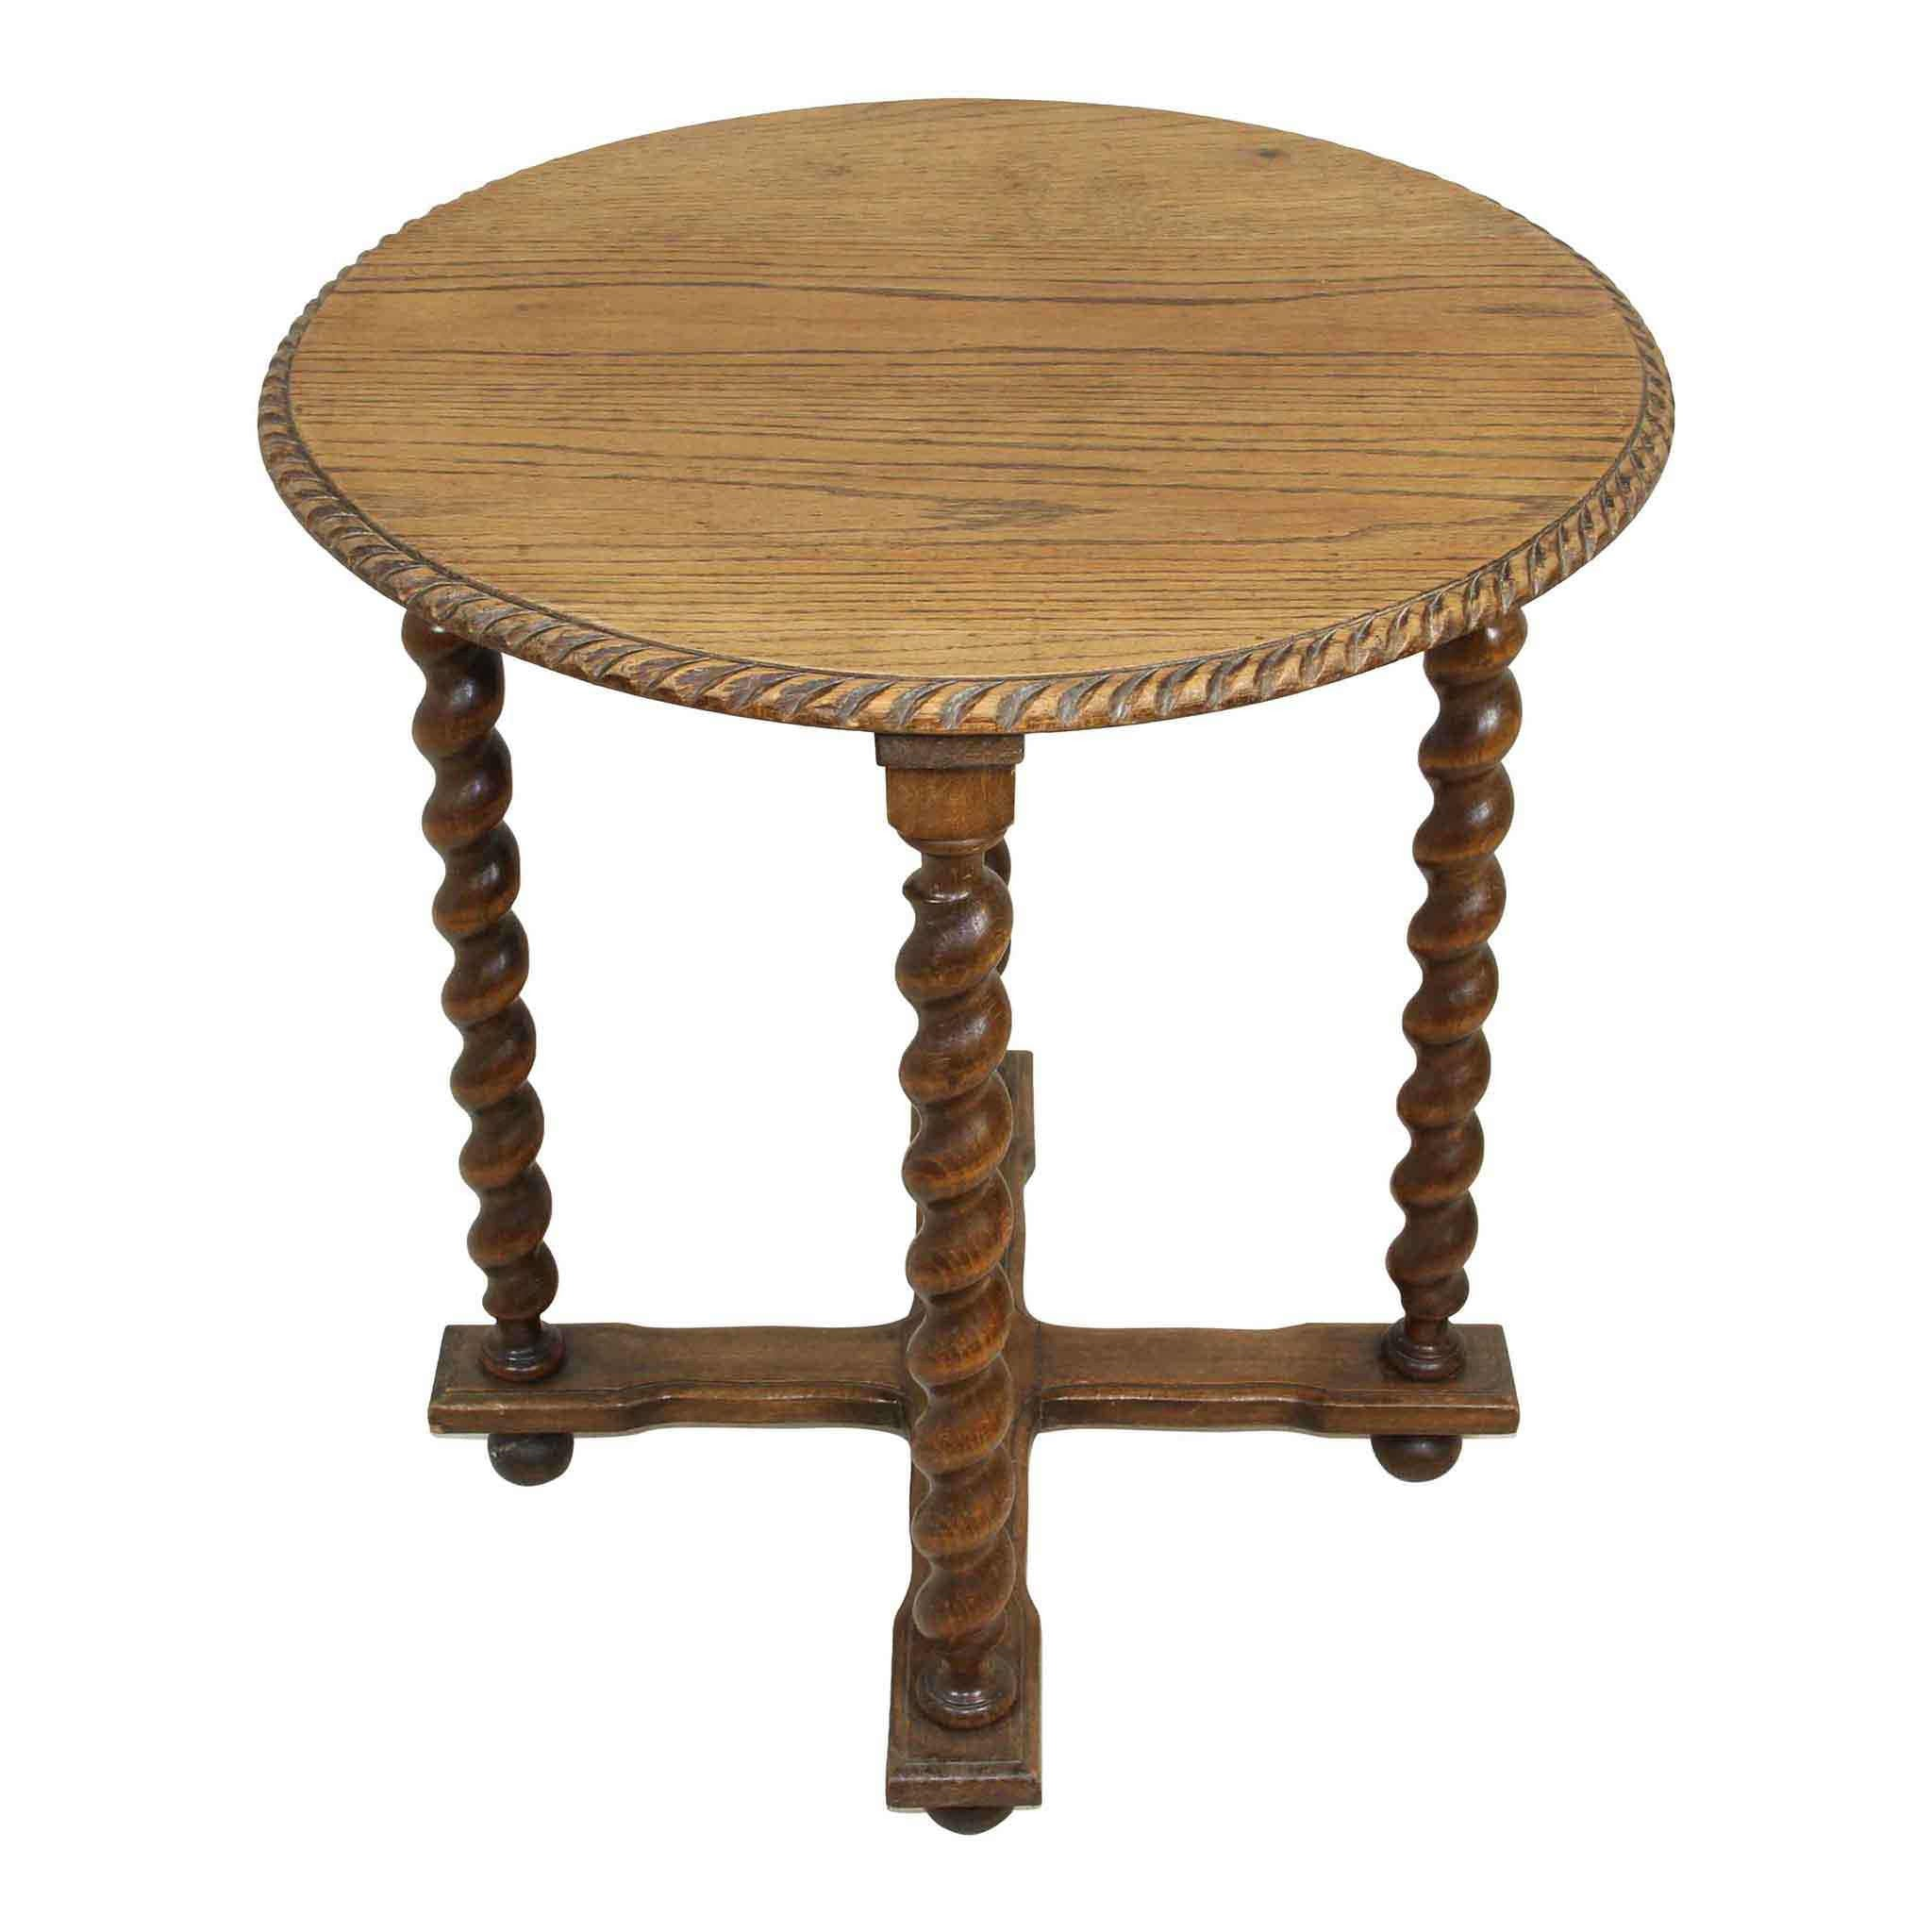 Round Table with Barley Twist Legs